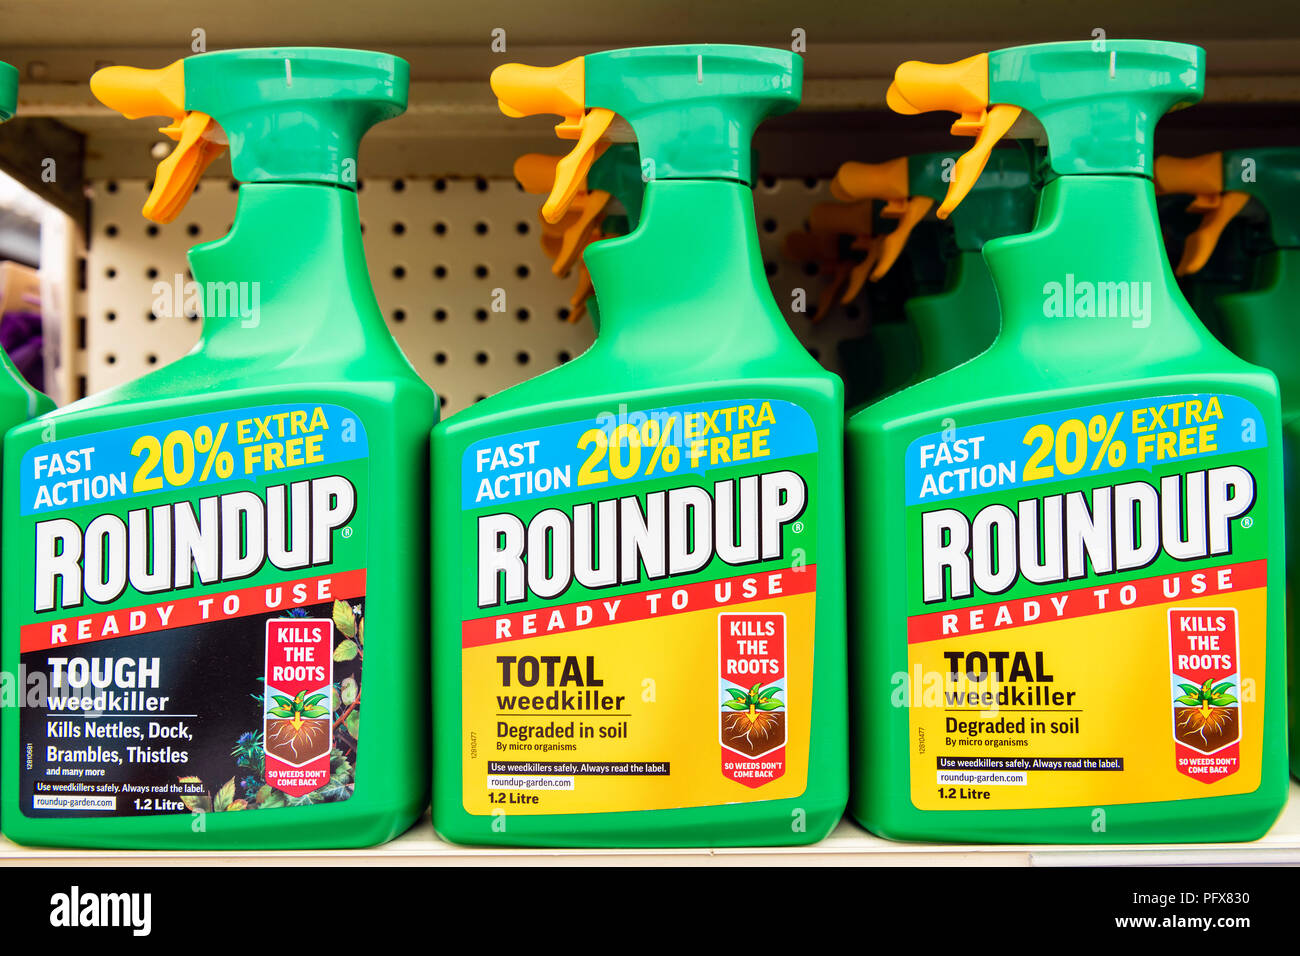 Roundup weedkiller made by Monsanto with Glyphosate, UK. Stock Photo